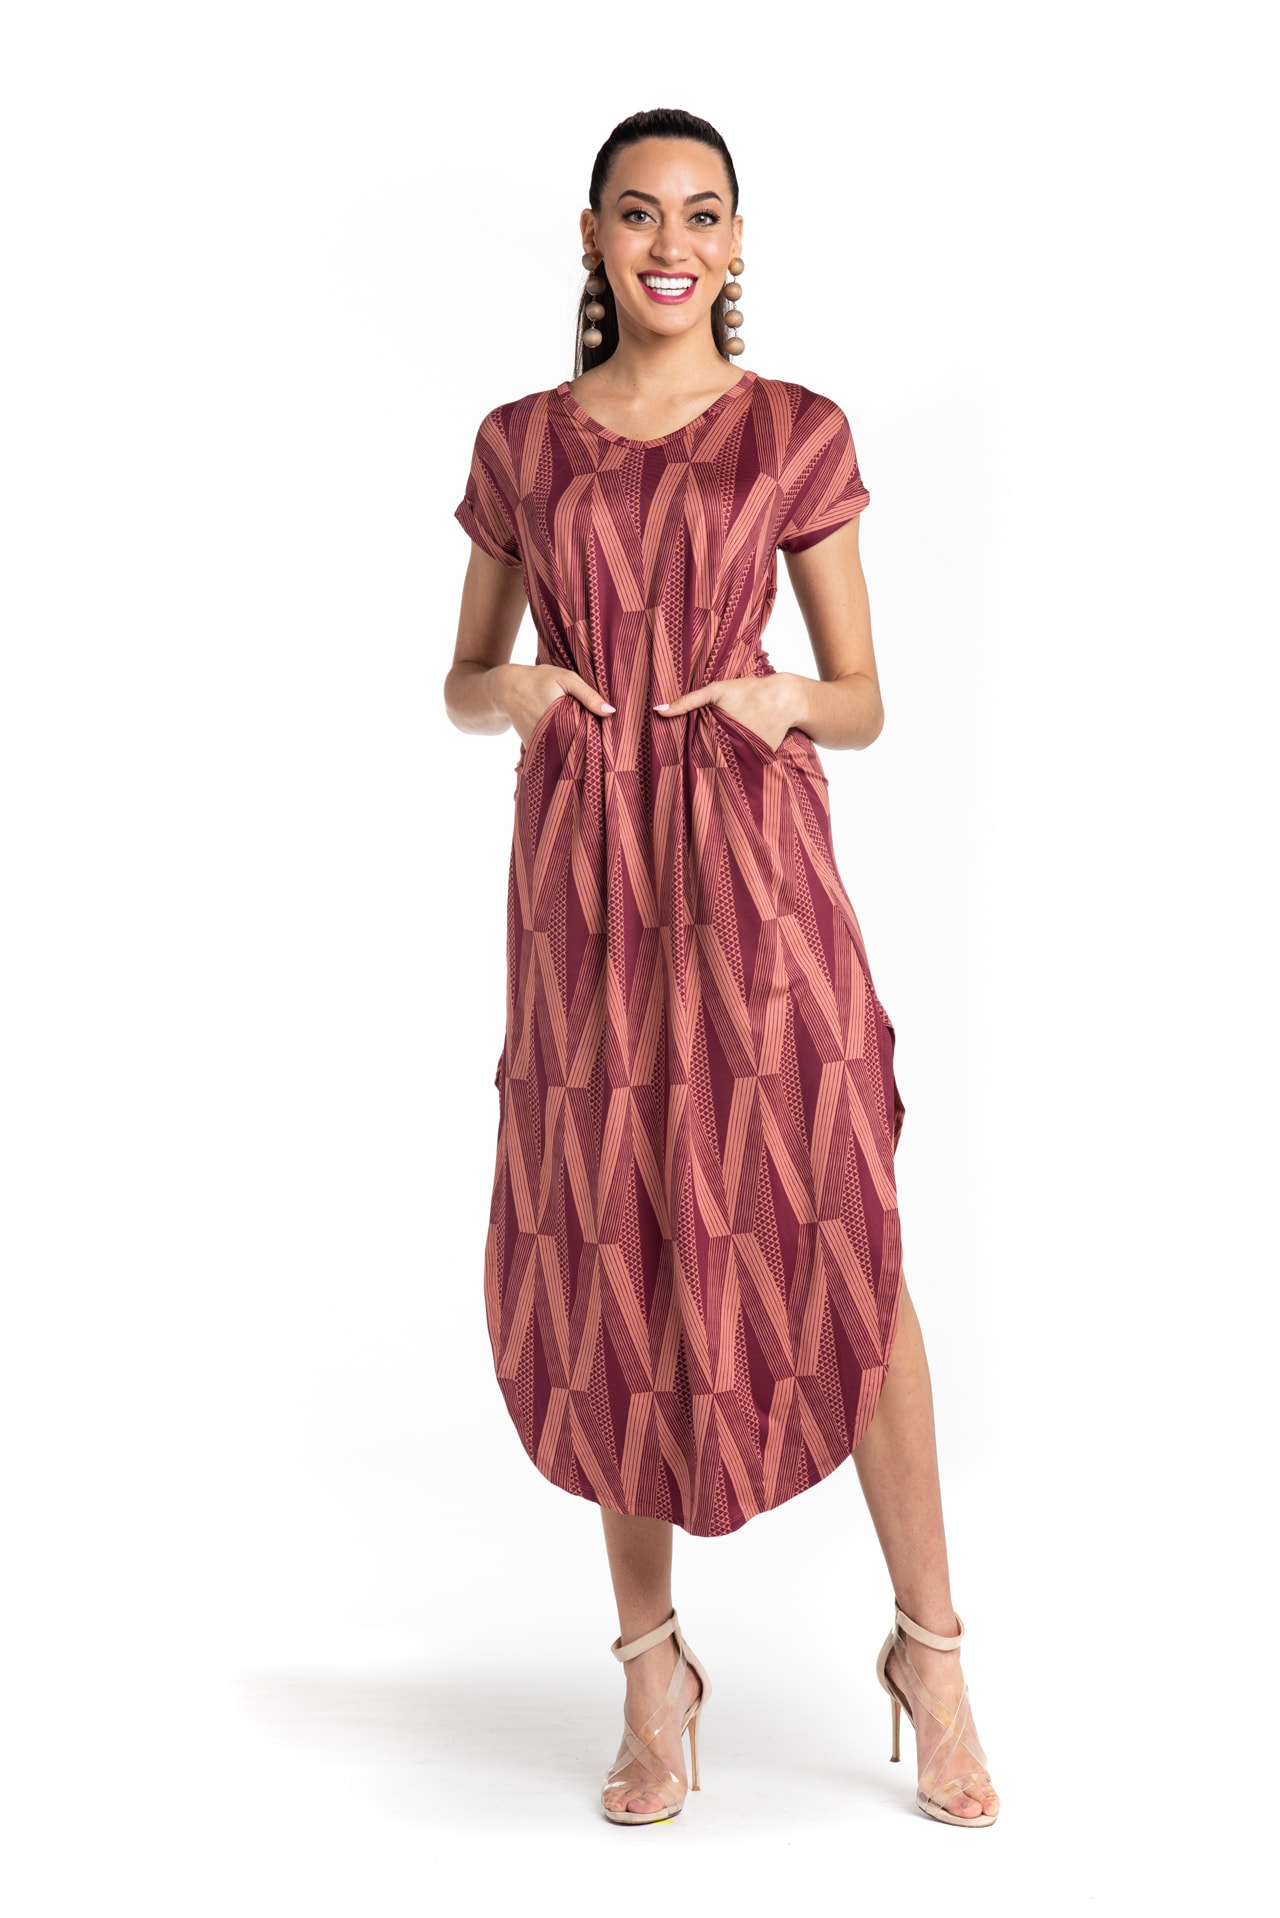 Model wearing Mahalo Nui Dress in Copper - Front View